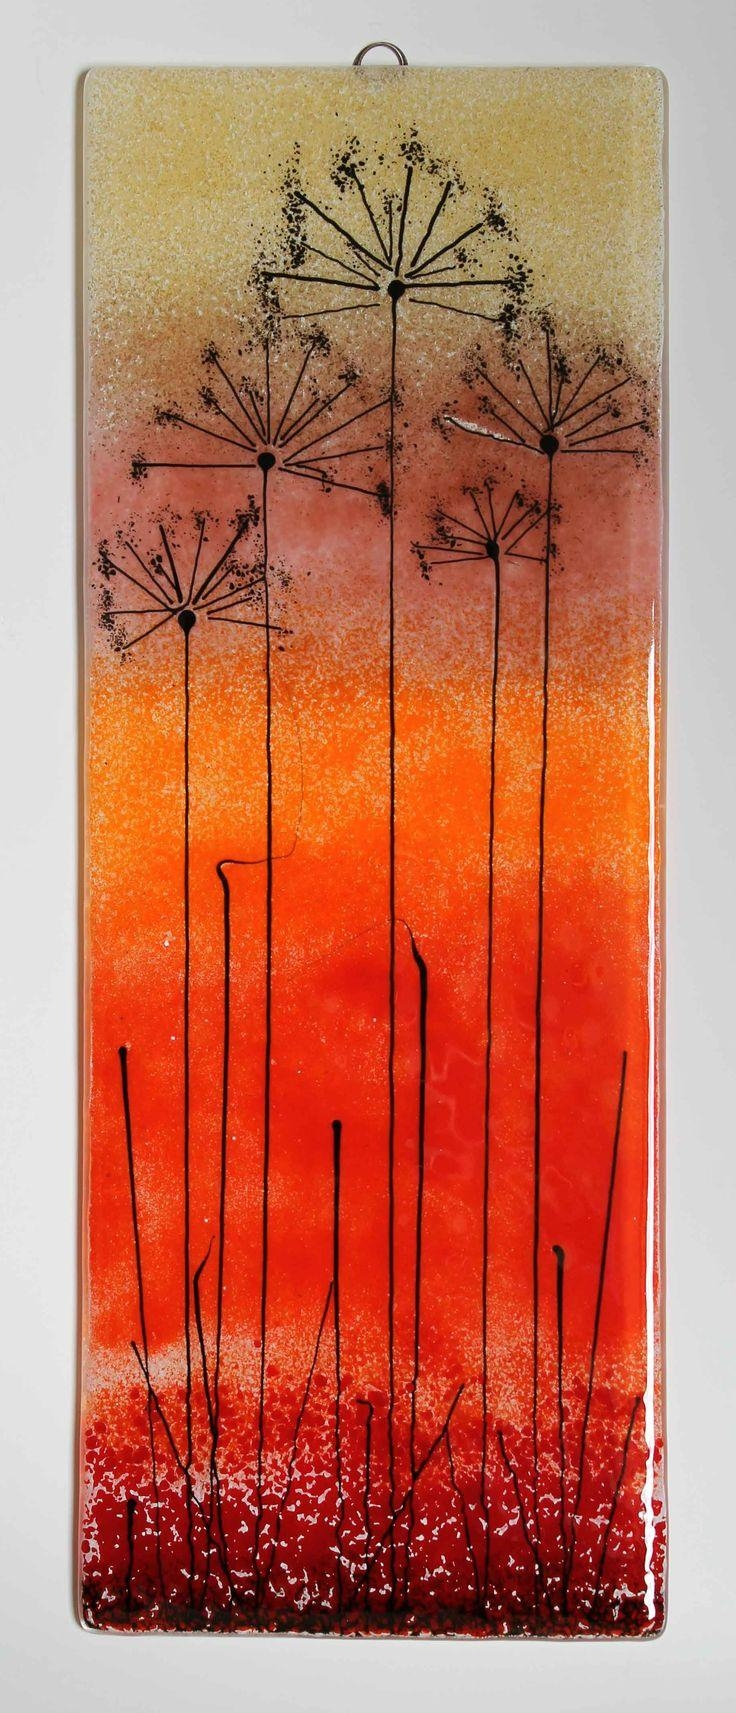 1914 Best Fused Glass – Artsy Fartsy Images On Pinterest | Stained For Fused Glass Art For Walls (View 19 of 20)